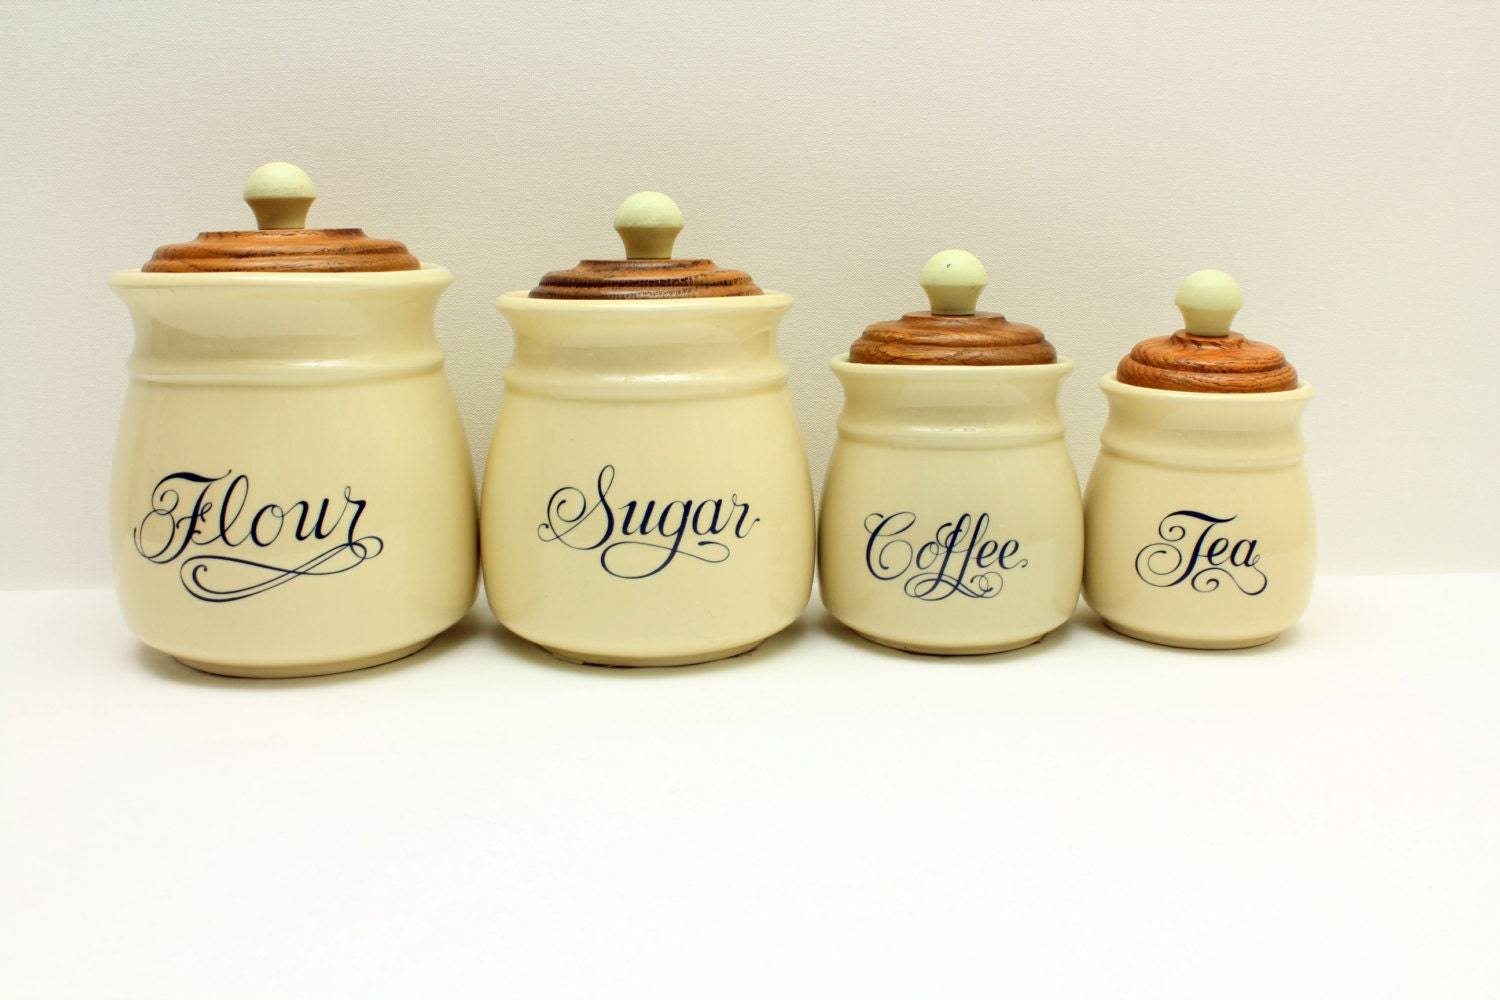 flour sugar coffee tea containers jars matching container. Black Bedroom Furniture Sets. Home Design Ideas